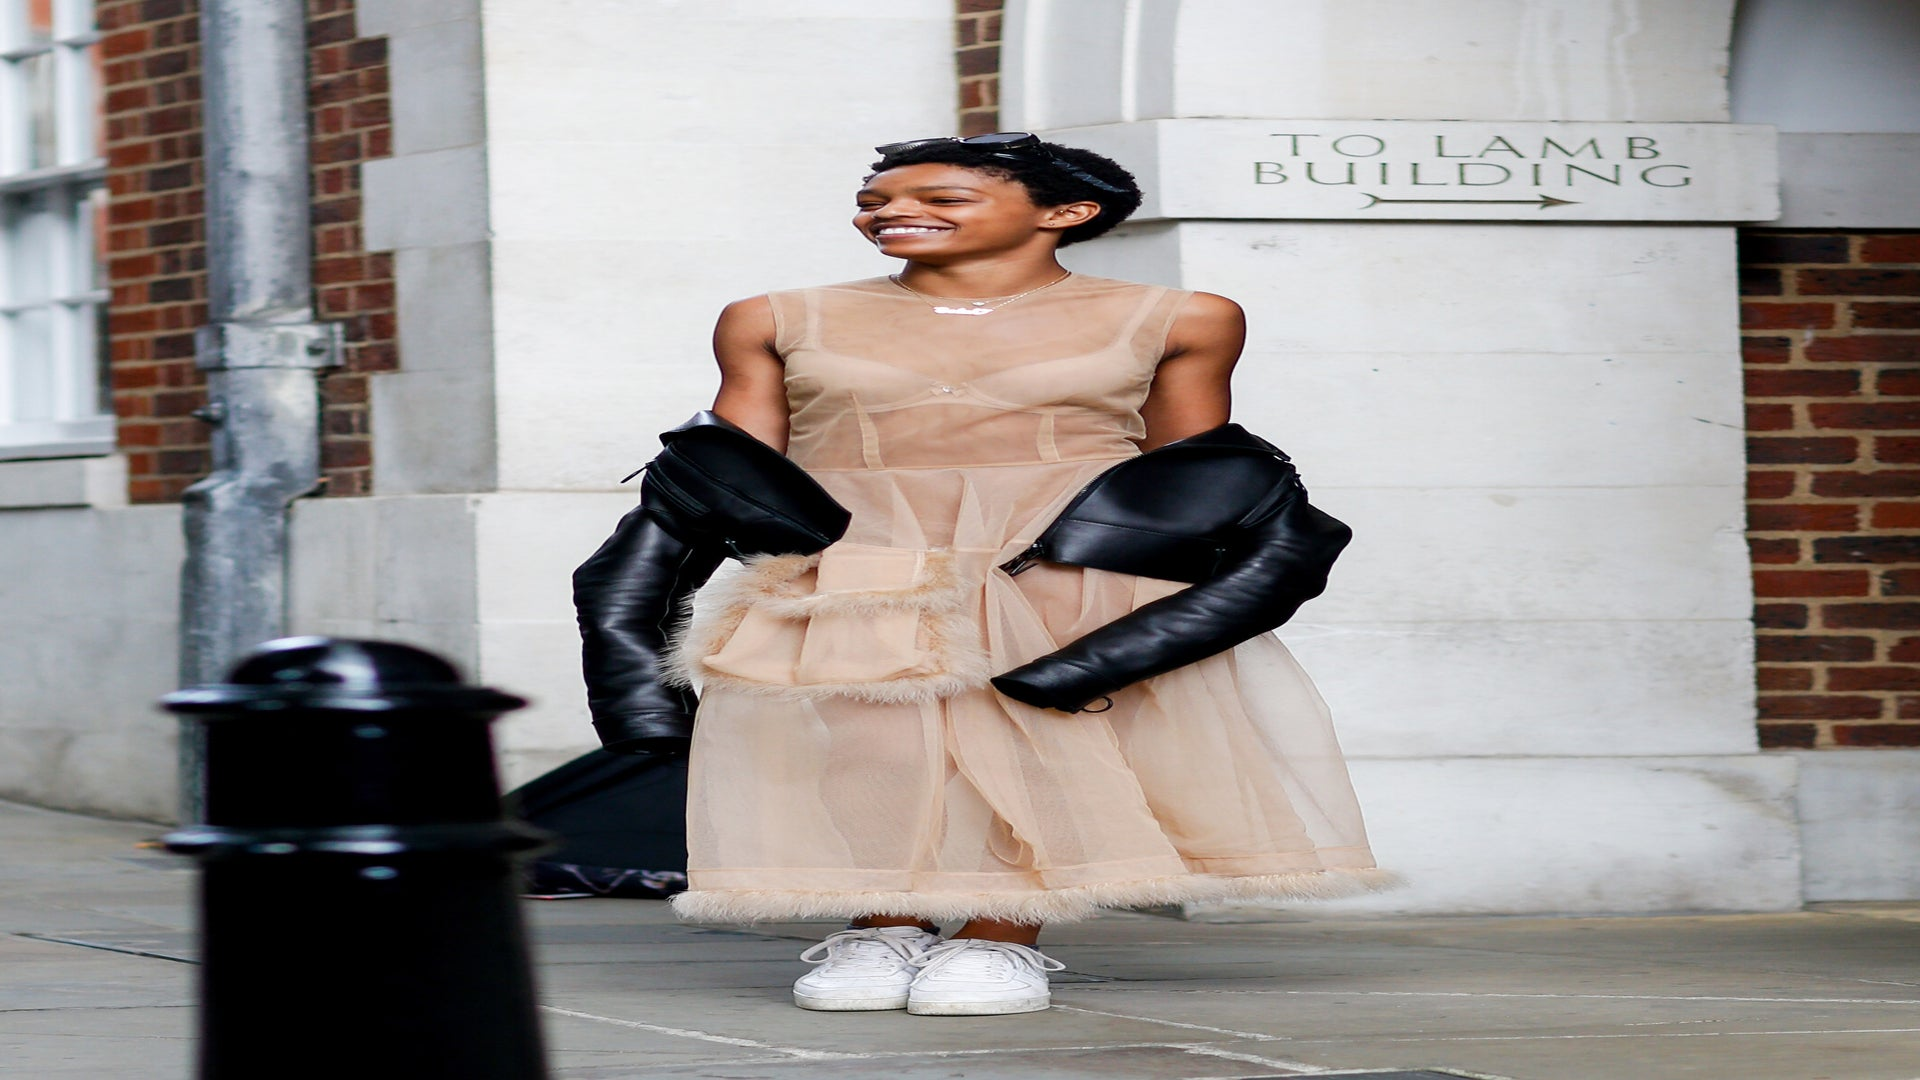 9 Times Selah Marley Slayed Without Even Trying